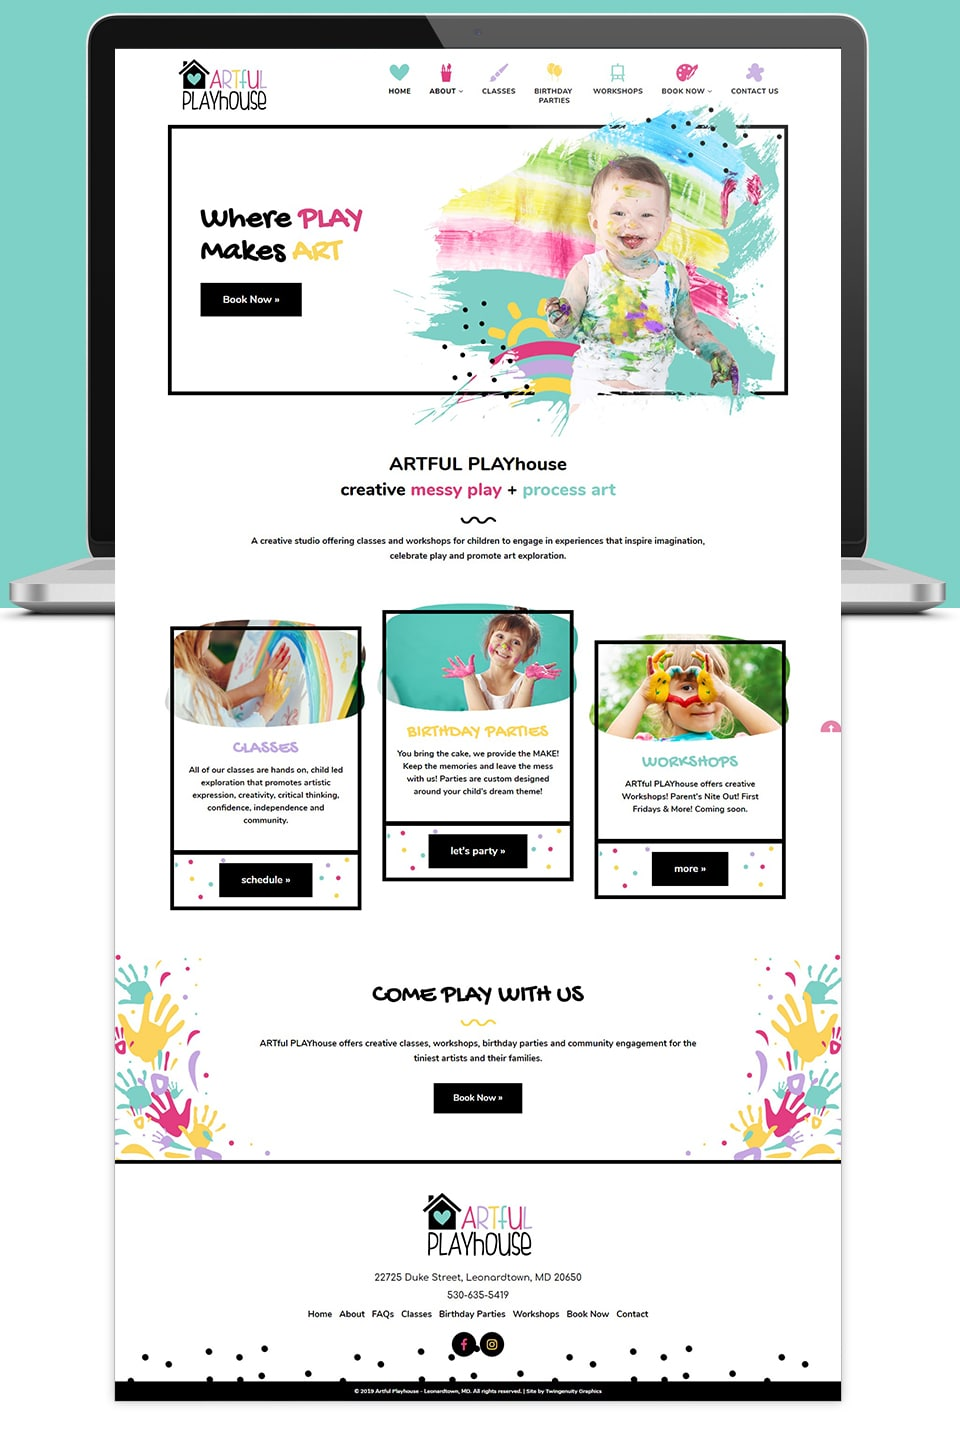 artful playhouse website home page layout